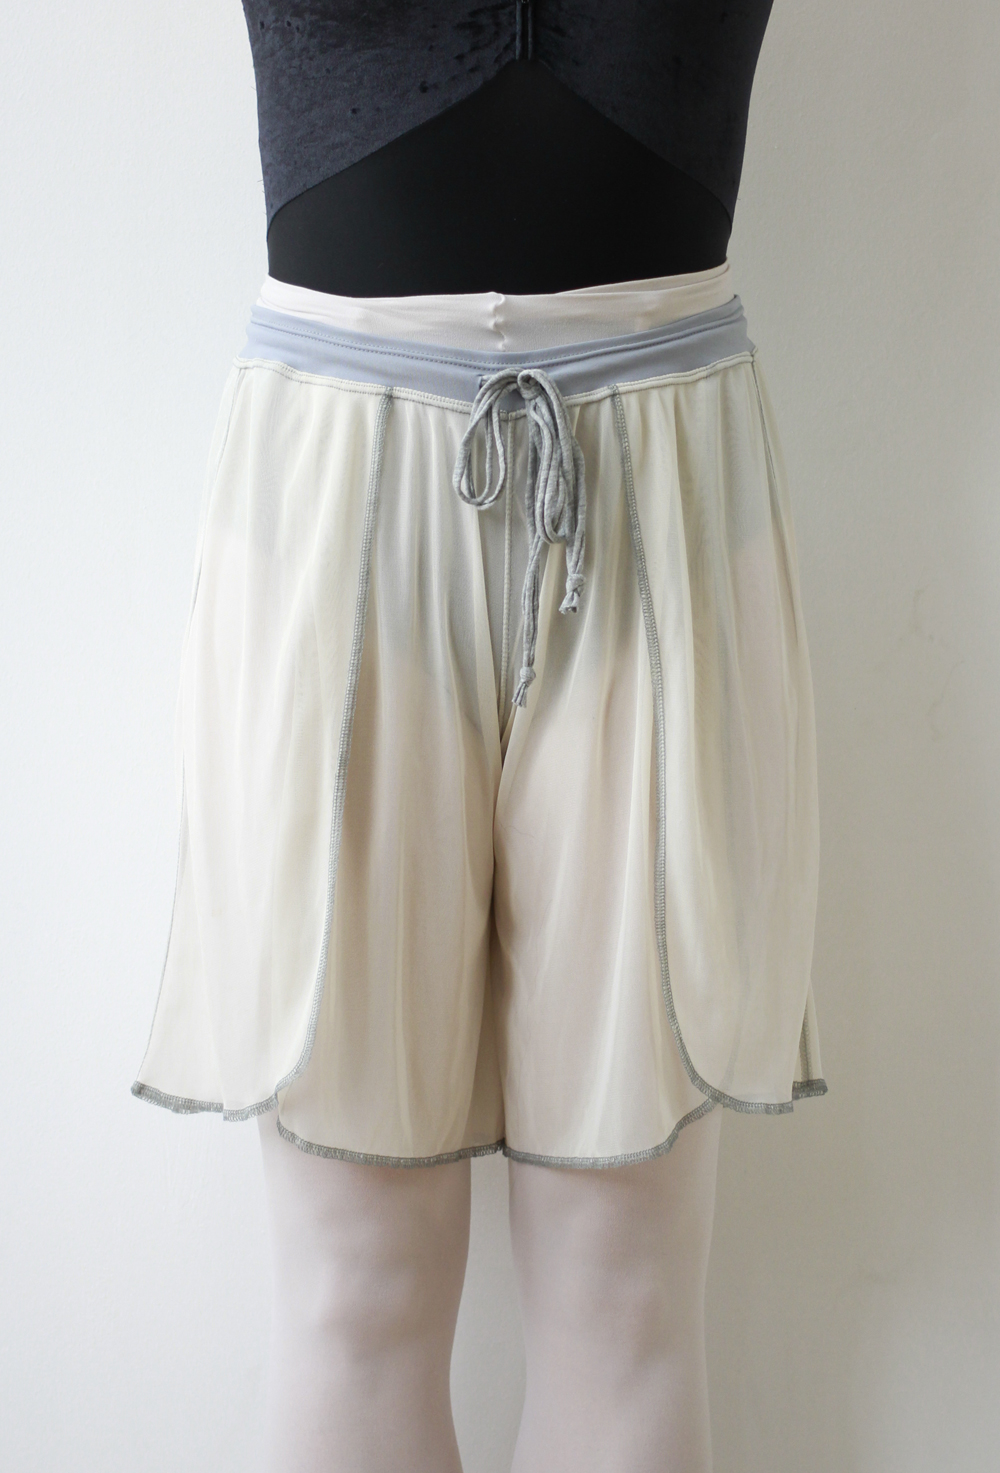 blanc_sheer_shorts_long_1.jpg